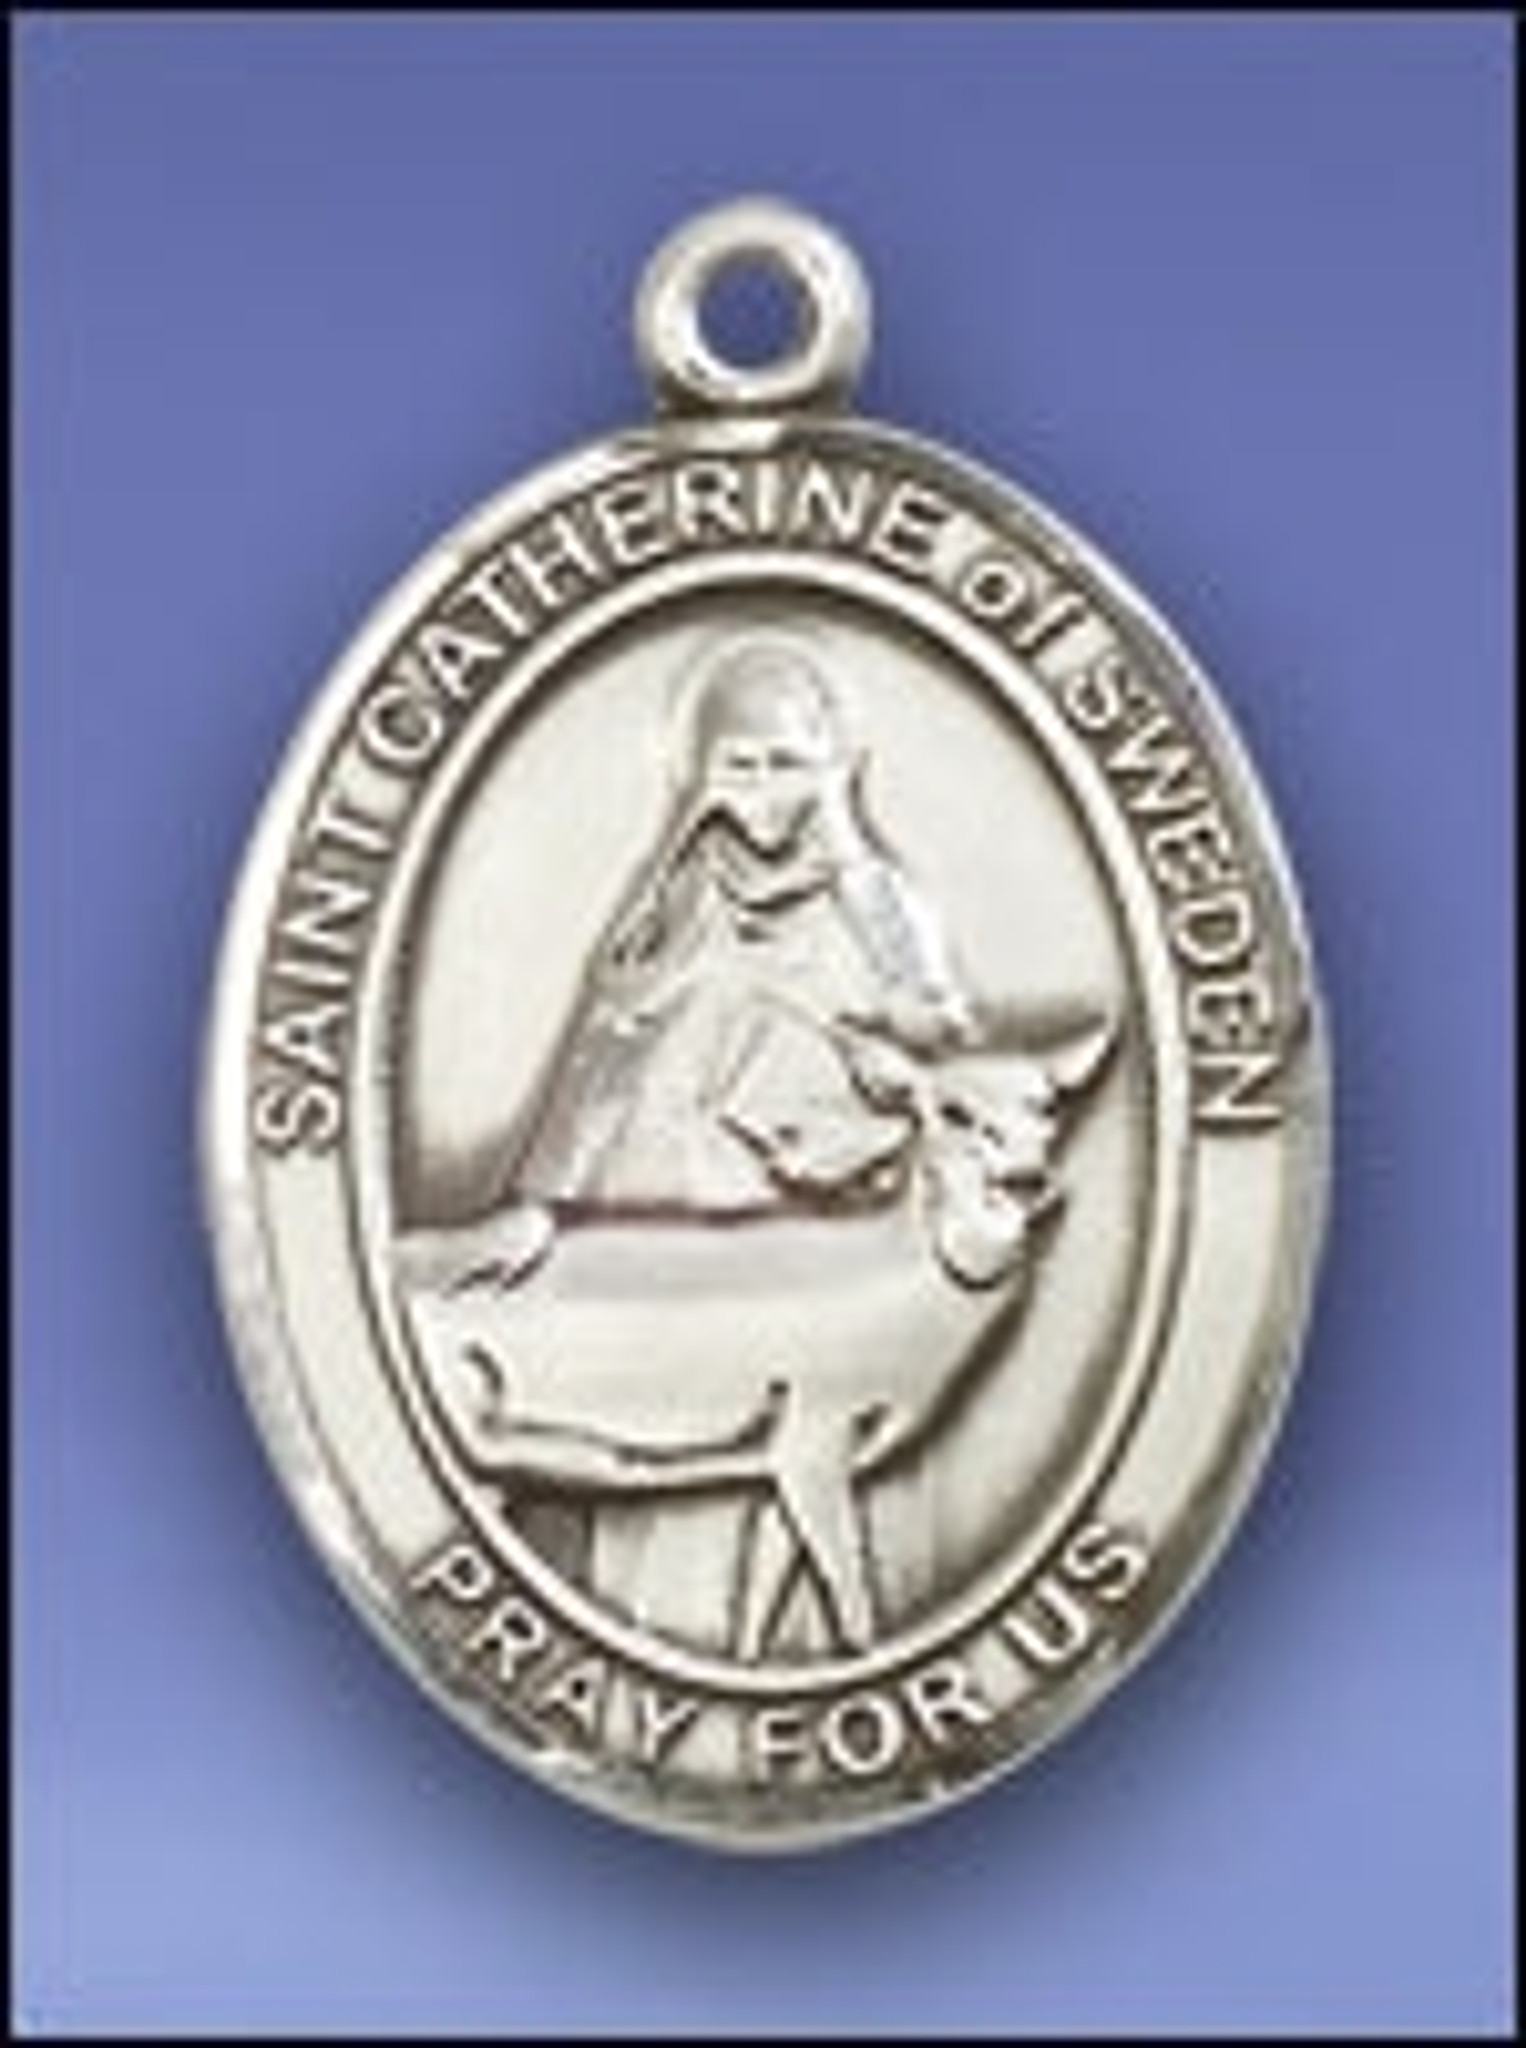 Catherine of Sweden